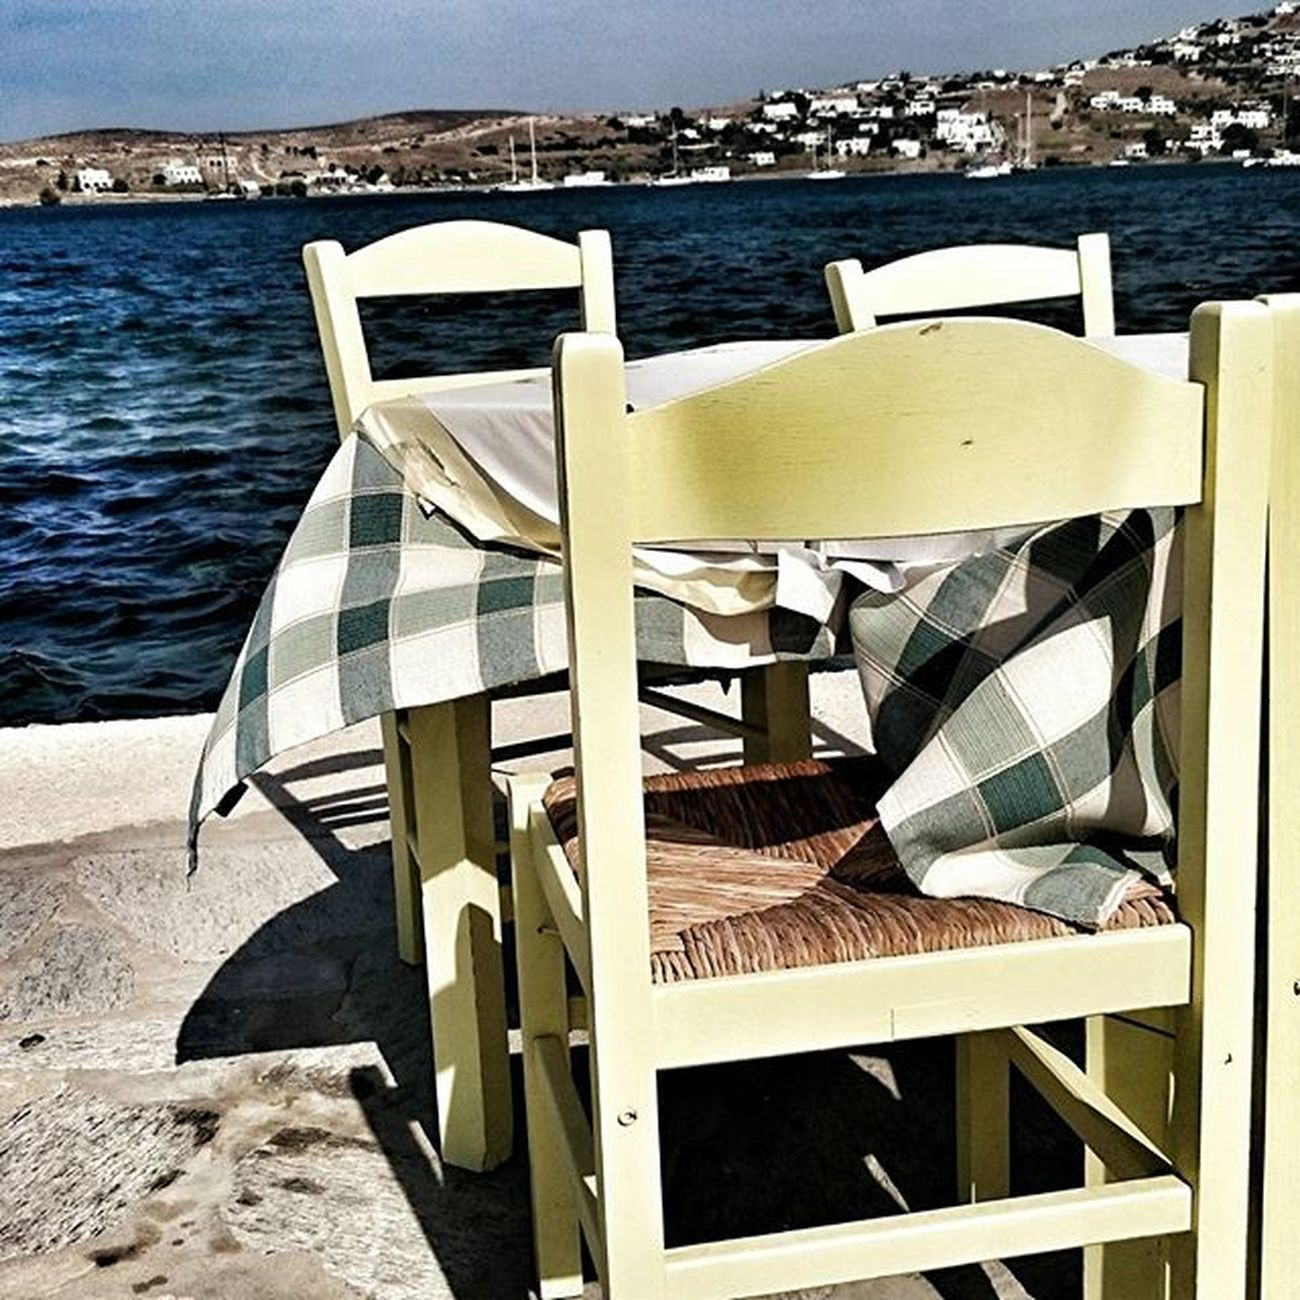 PARIKIA, PAROS, 1 PM. WAITING FOR LUNCH Parikia Parikiaparos Paros Paro Greekislands Greece Greecestagram Cyclades_islands Cyclades Lunch Table Dinner Seafood Seafront Seaview Picoftheday Photoofgreece Photooftheday Enjoy Havelunch Havedinner Restaurant